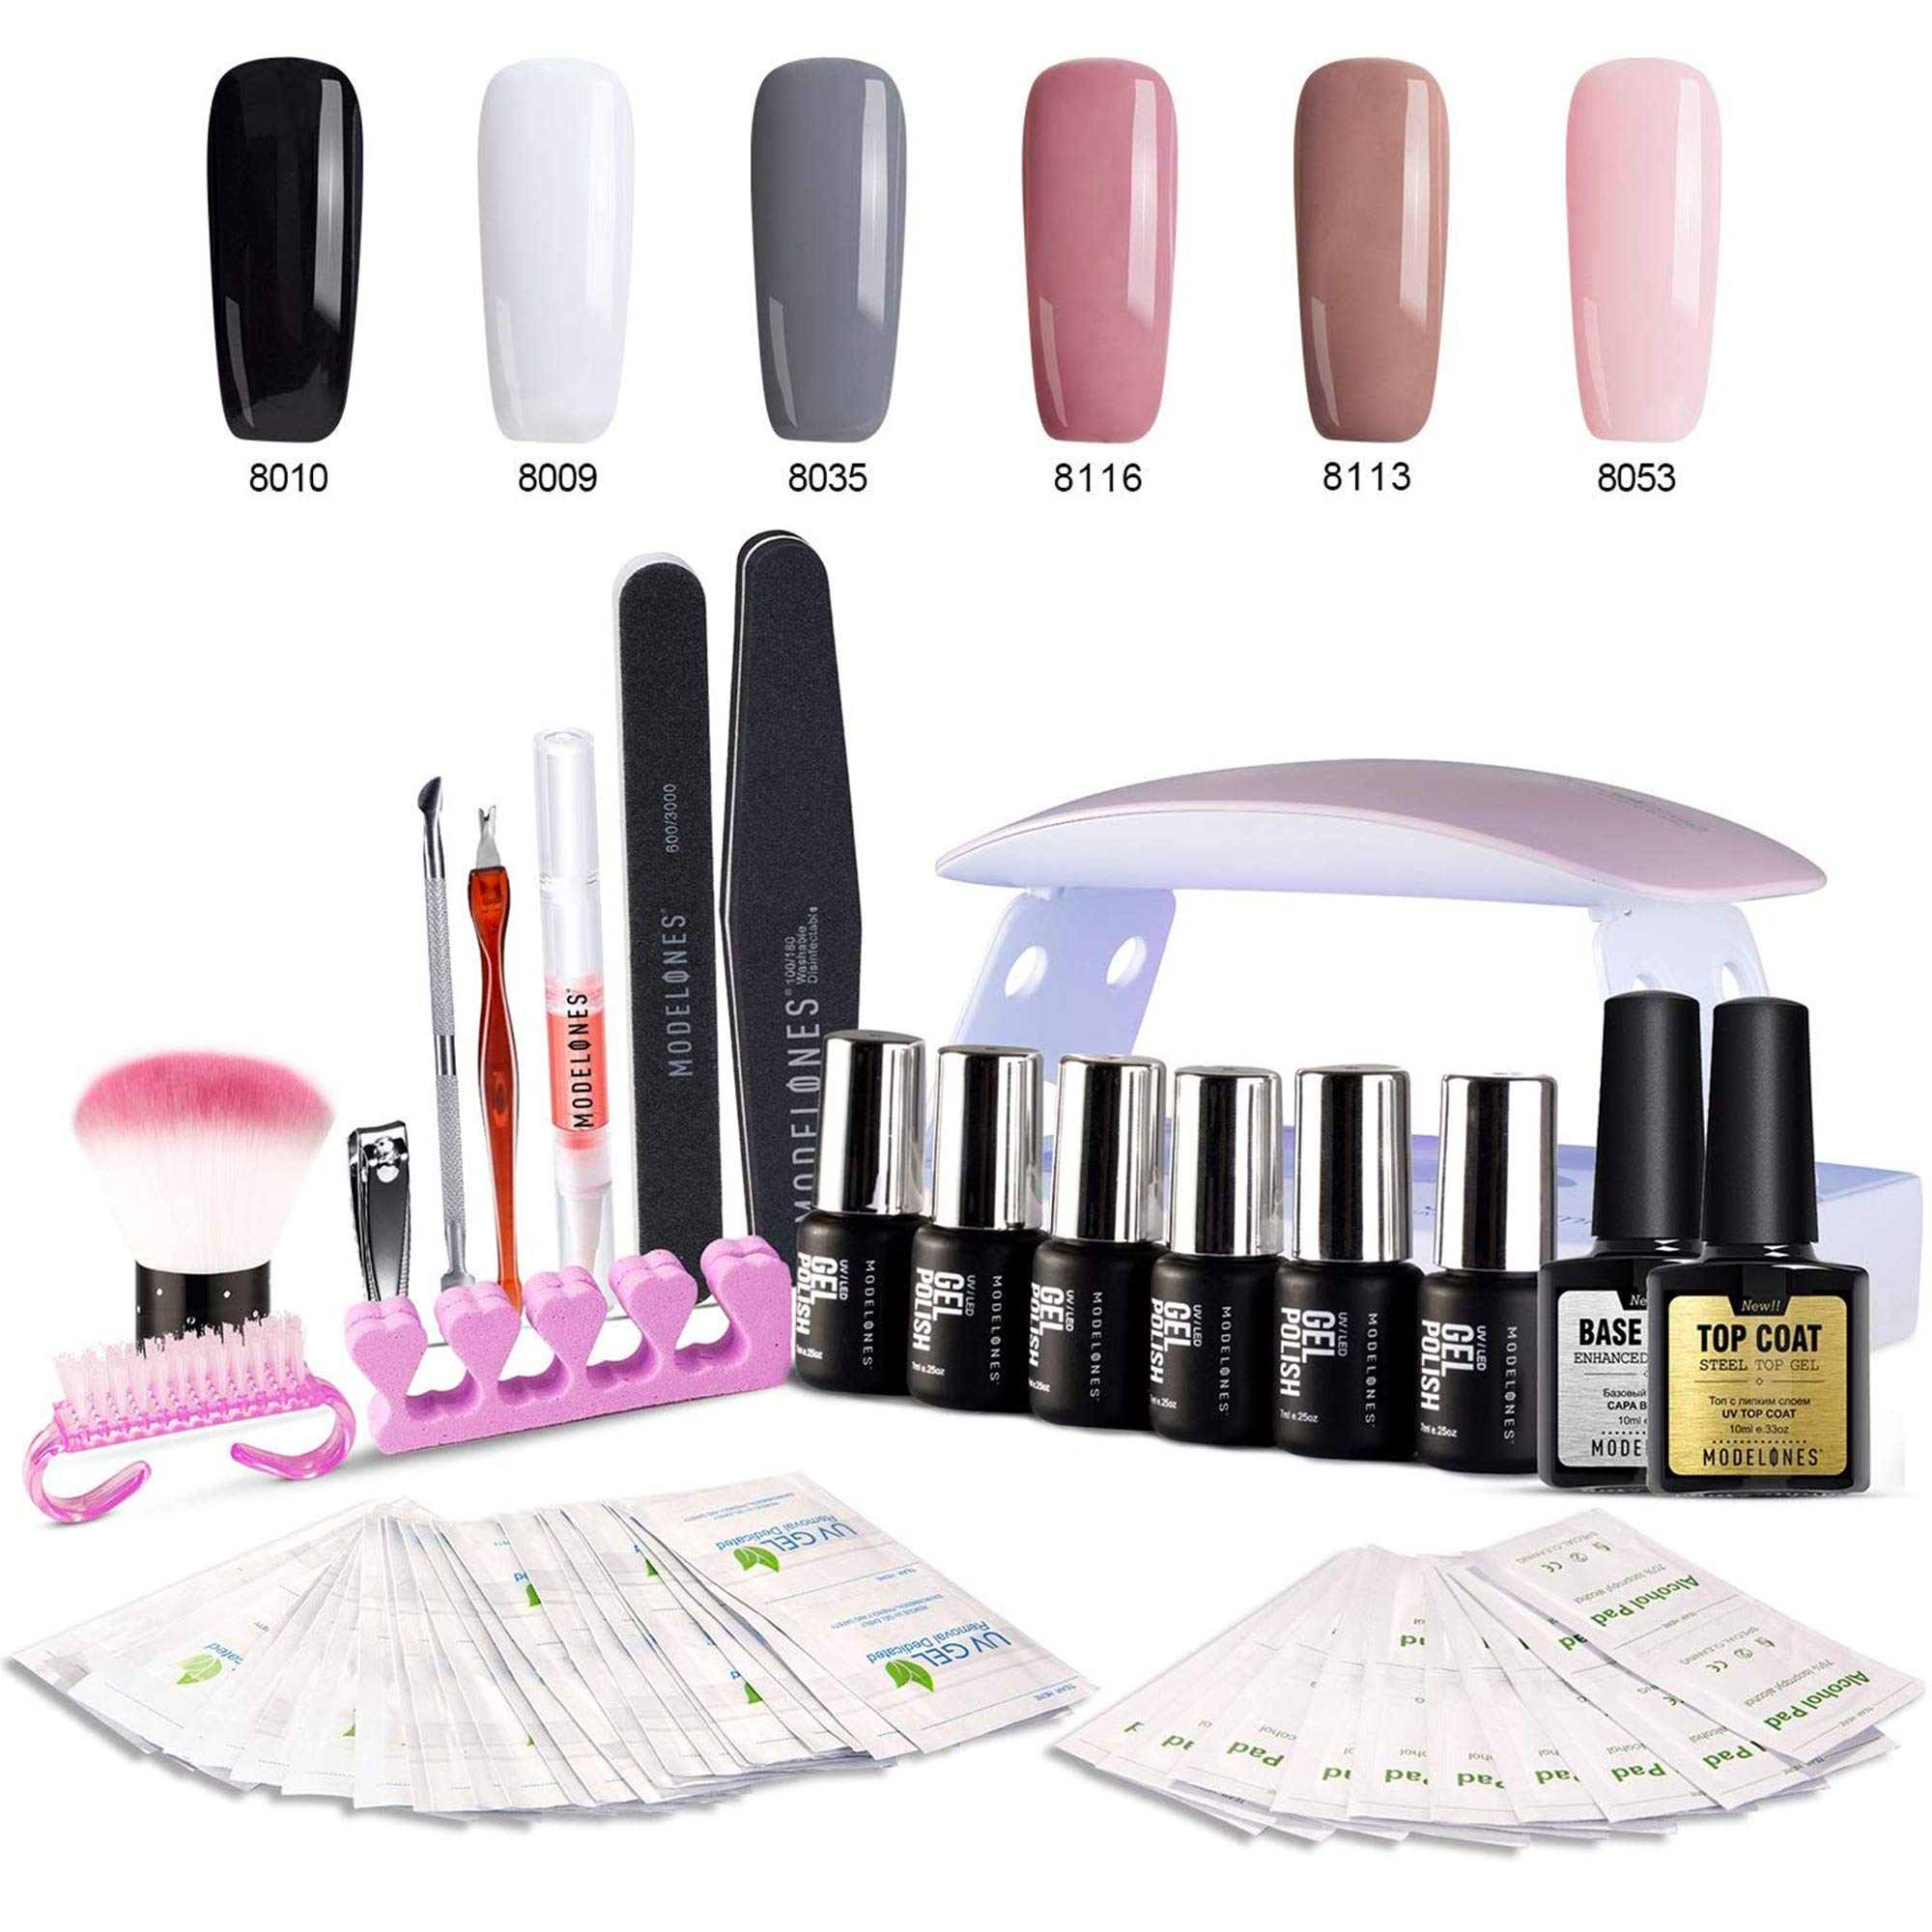 Gel Nail Starter Kit with UV Light - 6W Mini UV LED Nail Lamp, 6 PCS Color Gel Nail Polish 7ml Tiny Bottles, 10ml Base Top Coat, and Manicure Tools Set - Soak Off Portable Kit by Modelones by modelones